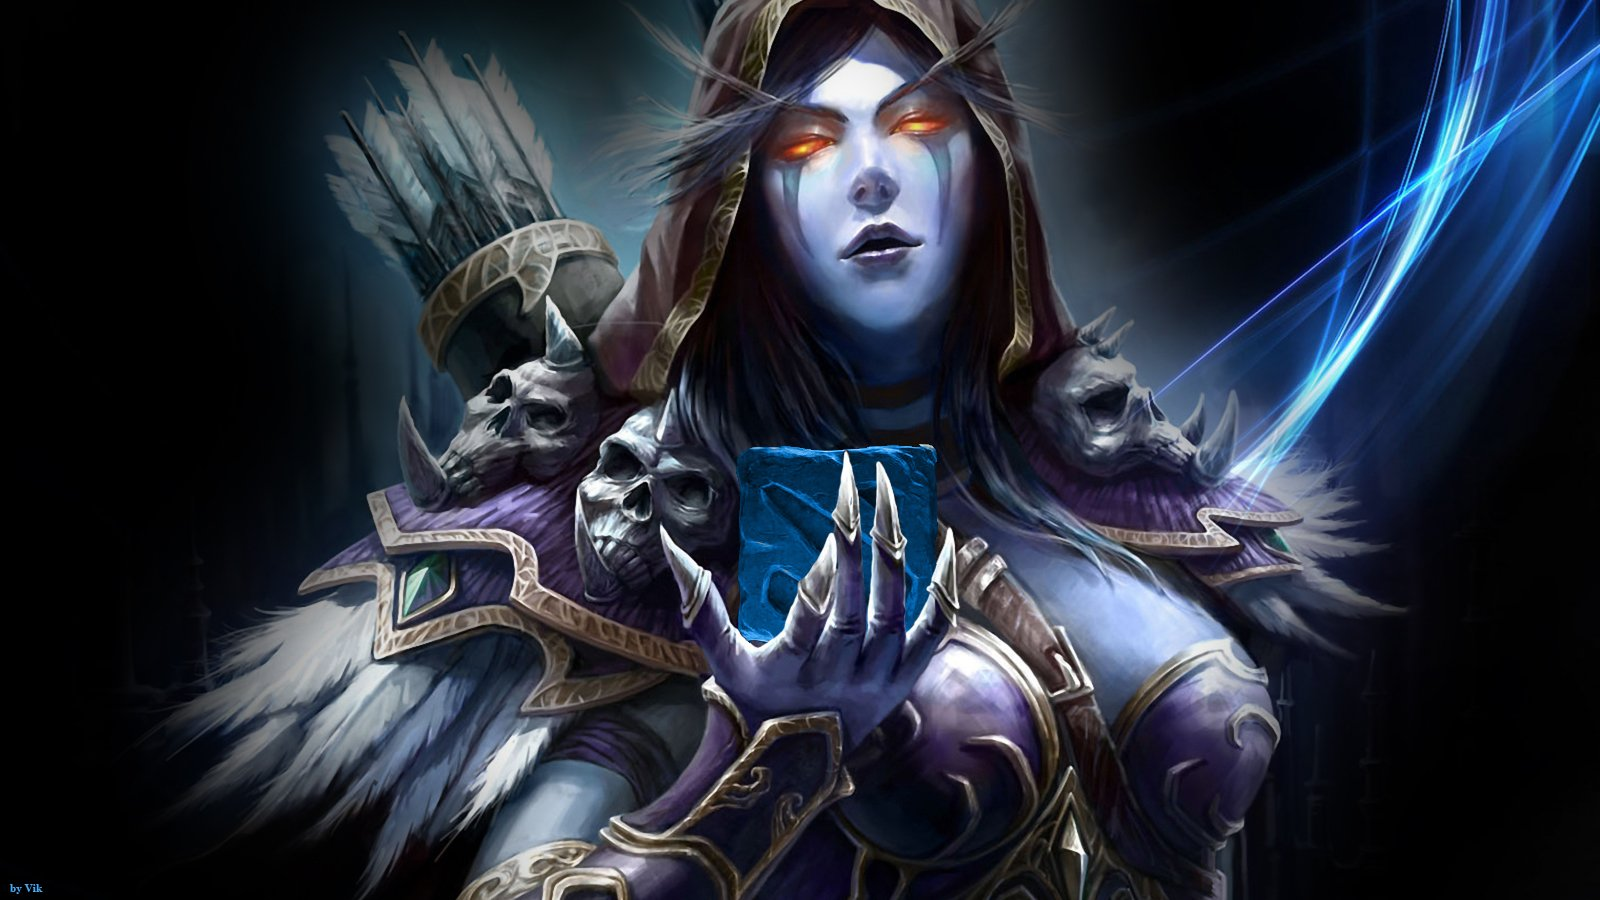 Video Game - World Of Warcraft  Sylvanas Windrunner Wallpaper